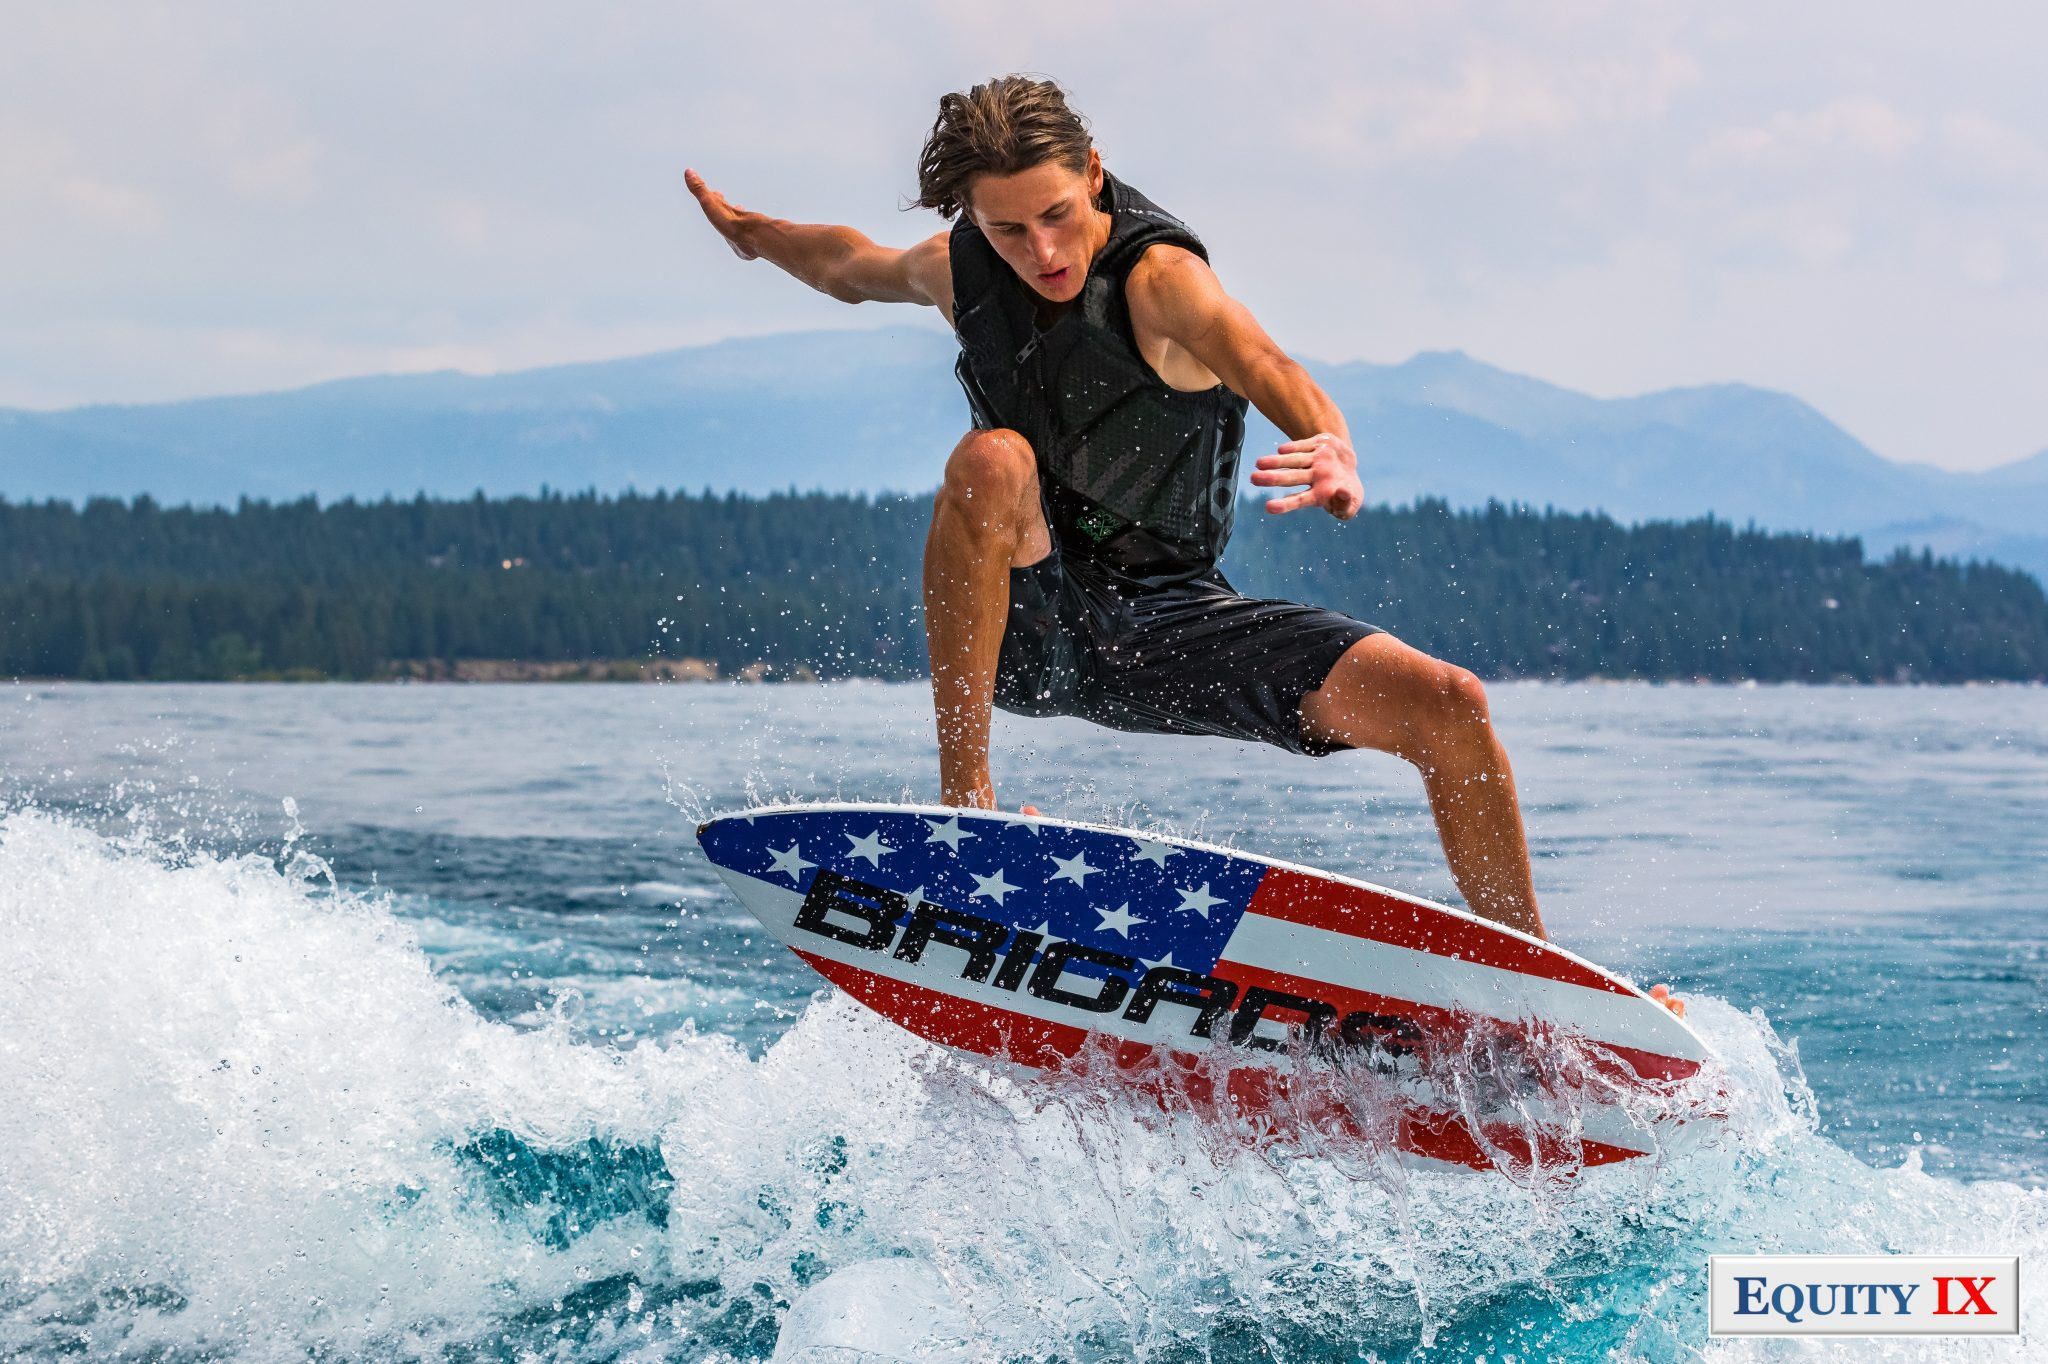 Cole Sorensen wakesurig with his red white and blue Brigade board out of the water, his ripped arms fully extended from his back life jacket - 2018 Tahoe Surf Company @ Equity IX - SportsOgram - Leigh Ernst Friestedt